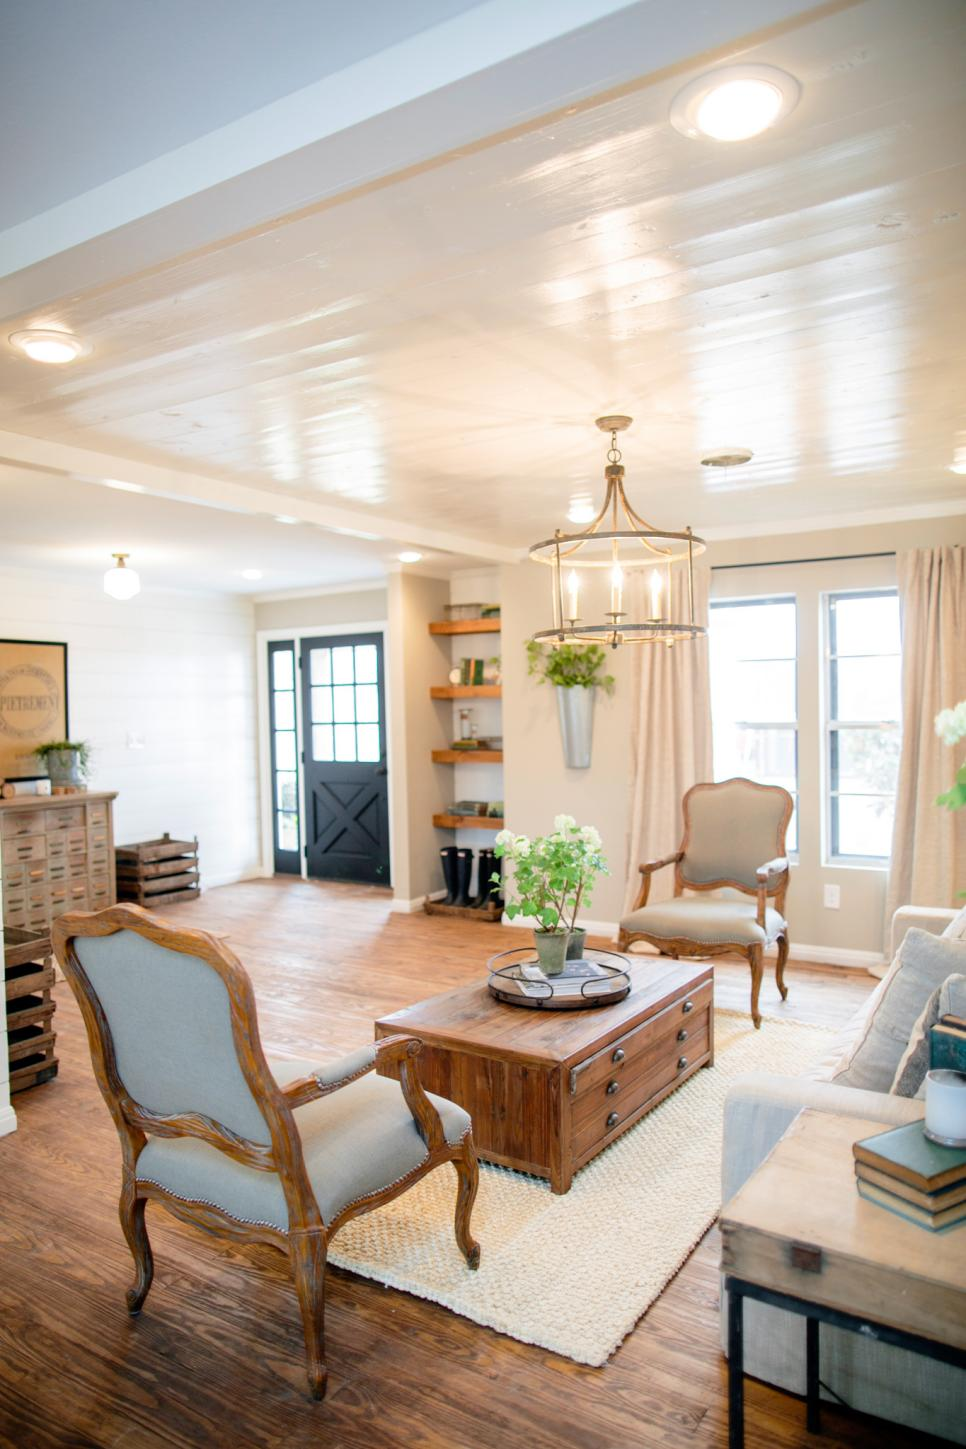 Small Living Rooms Decorating Hgtv: Decorating With Shiplap: Ideas From HGTV's Fixer Upper